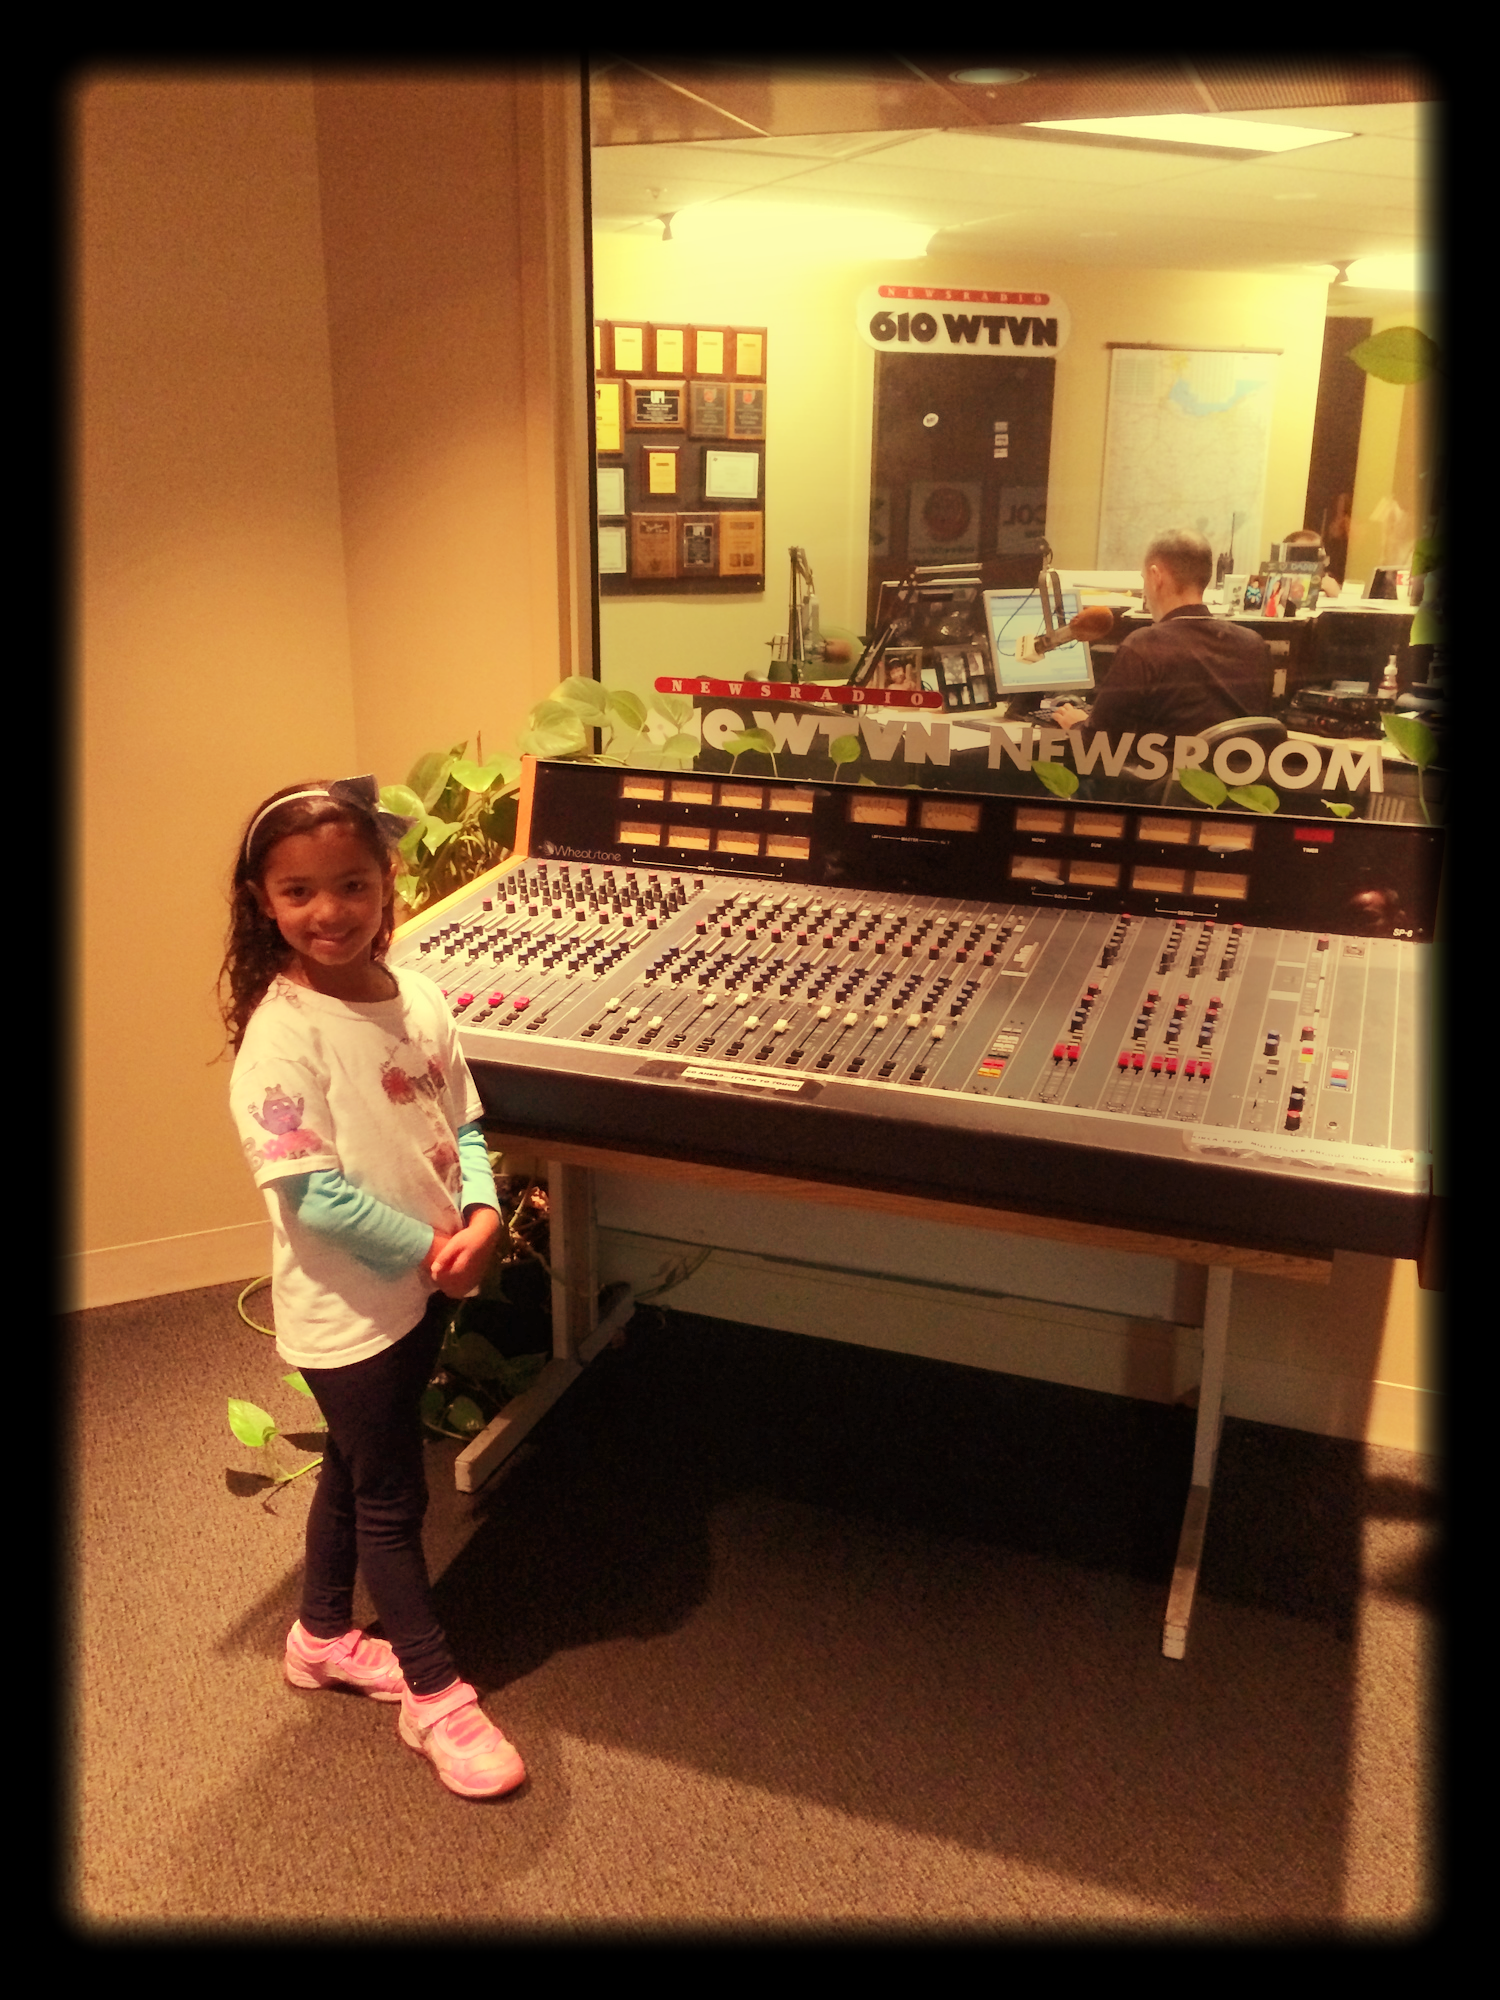 I remember listening to Bob Conners and the great Buckeye coverage at 610WTVN.  Now the passing of the torch as my daughter, Emerson checks out the vintage equipment at the 610WTVN Studio.